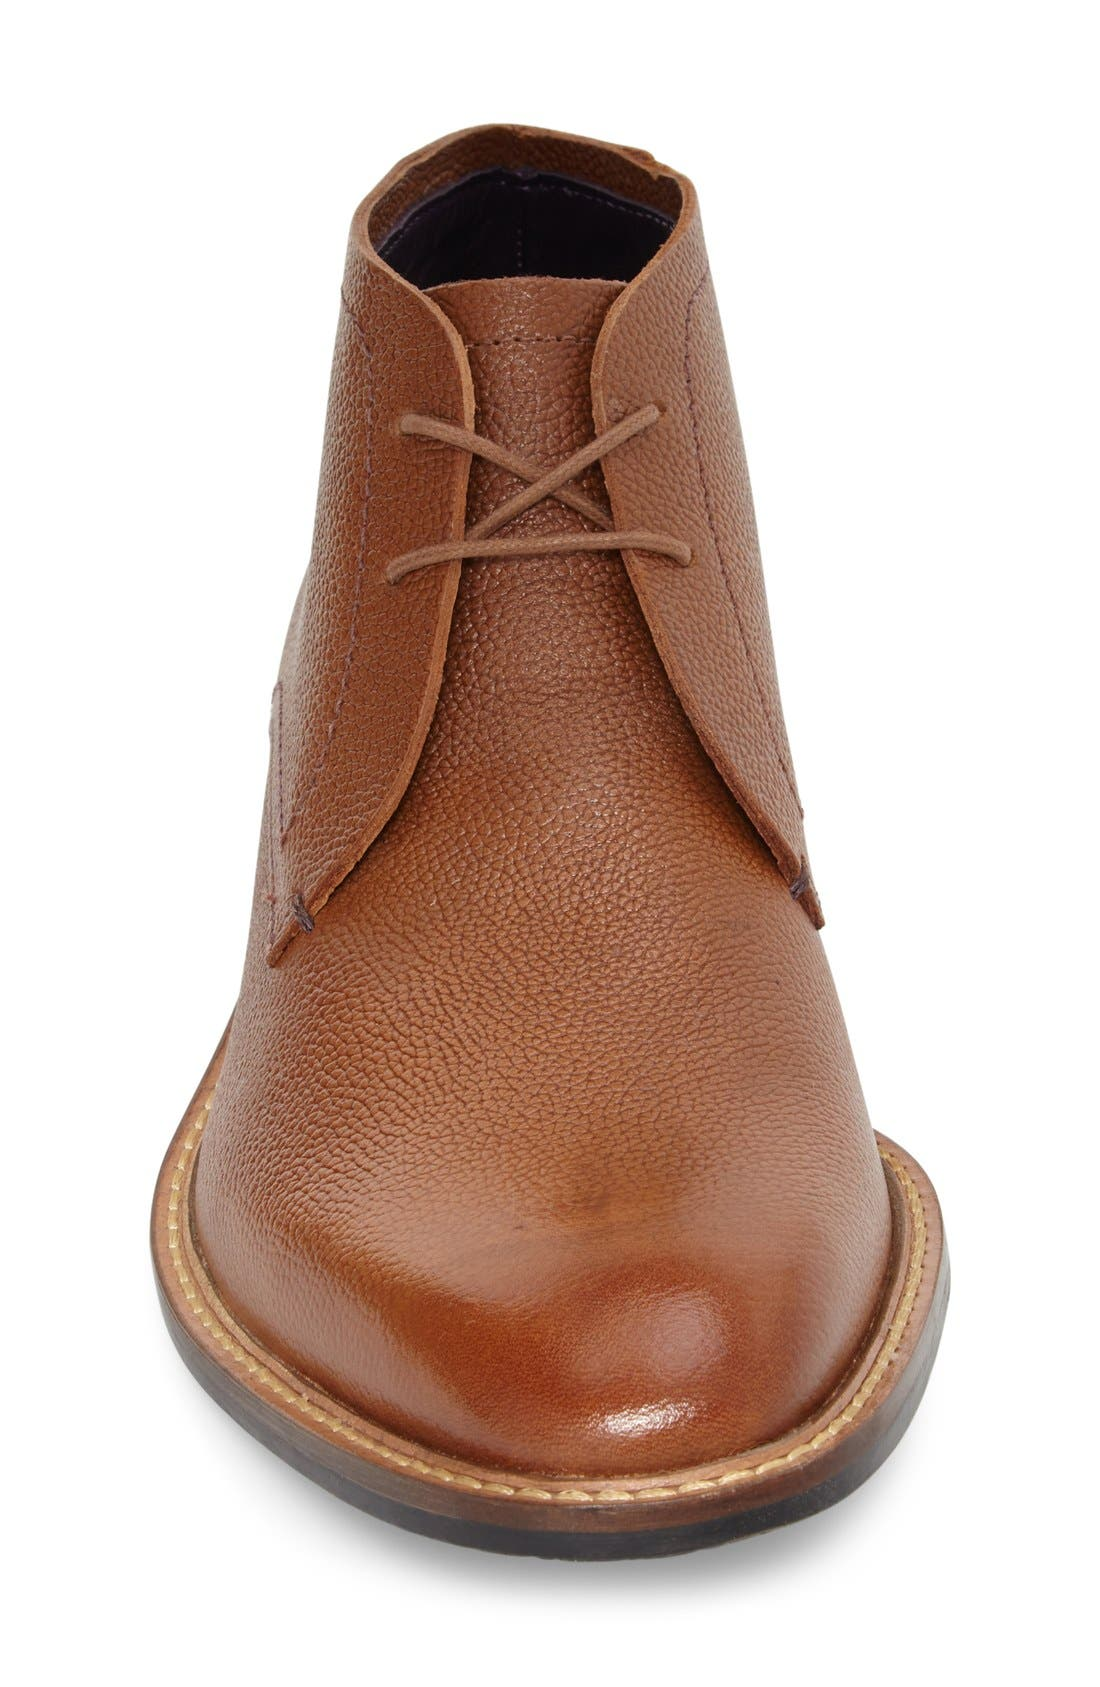 'Torsdi 4' Chukka Boot,                             Alternate thumbnail 13, color,